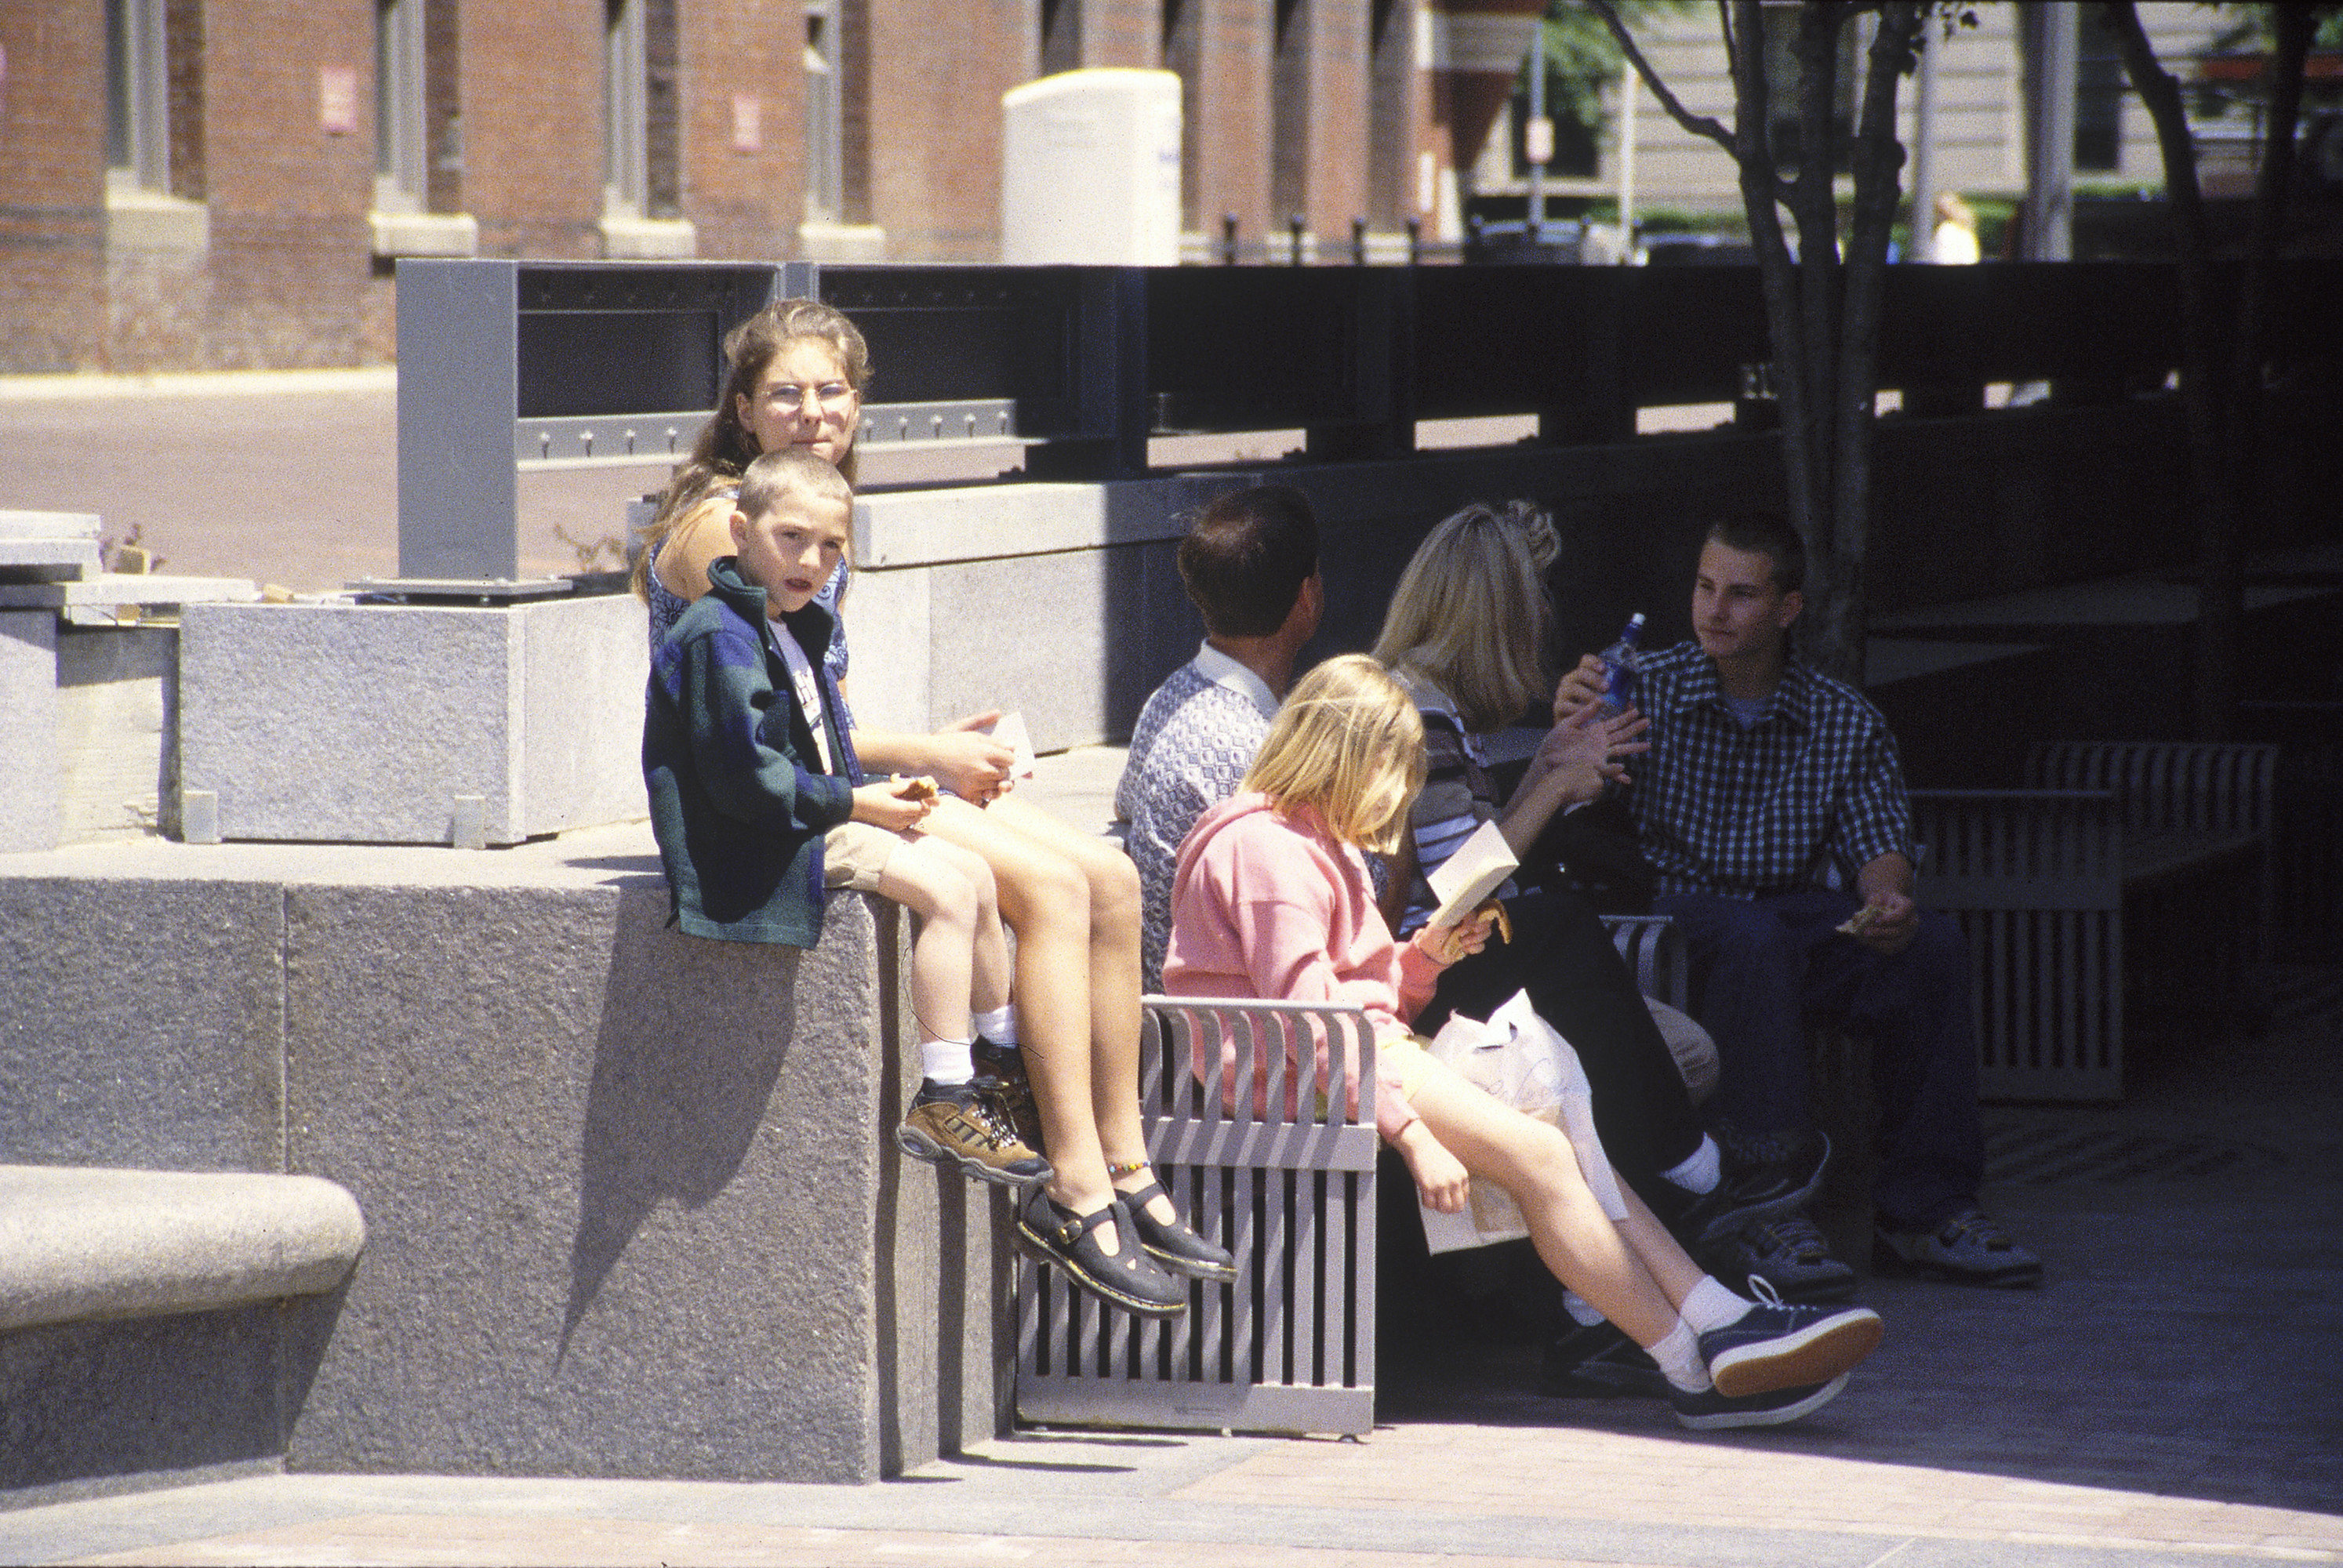 Visitors sit on benches in Thorn Alley, near the 15th Street entrance to the U.S. Holocaust Memorial Museum.